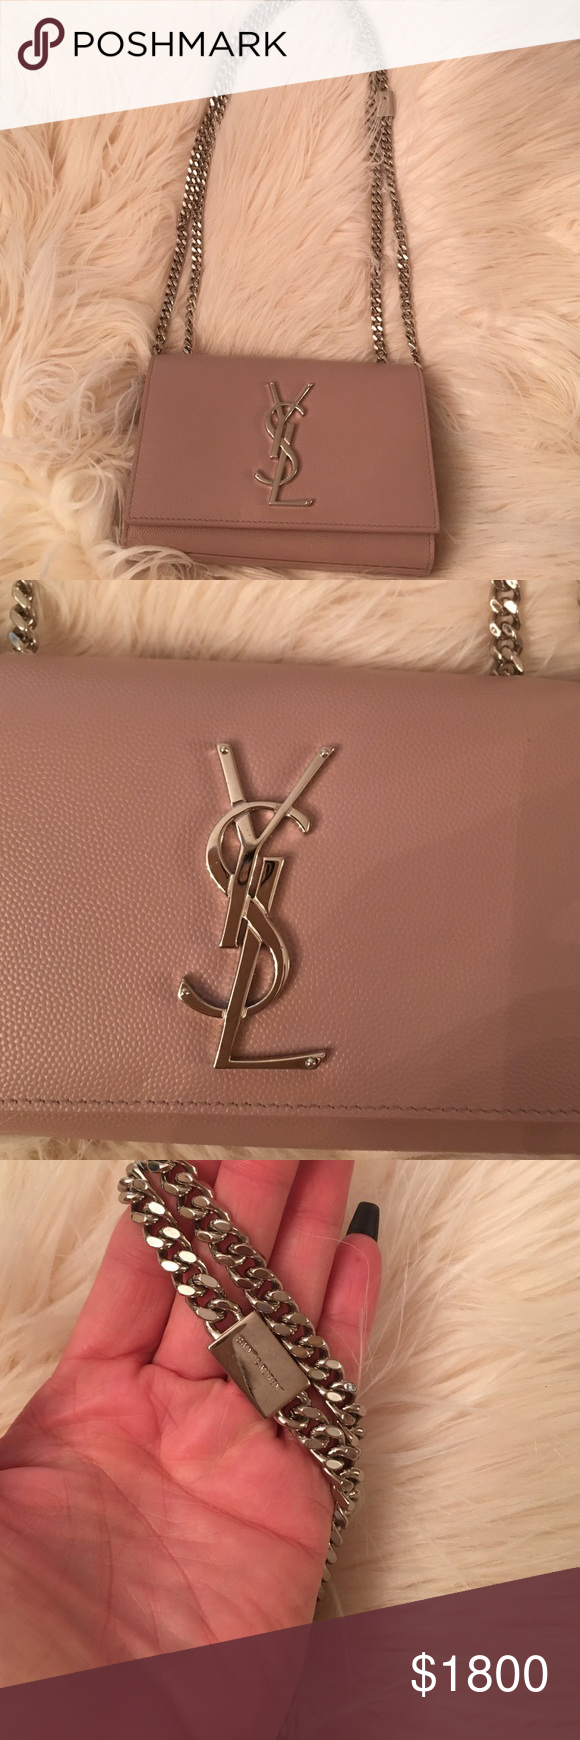 Authentic Ysl Rose And Silver Hardware Chain Strap Purse Small Sold Out Gorgeous Classic Piece Bags Mini